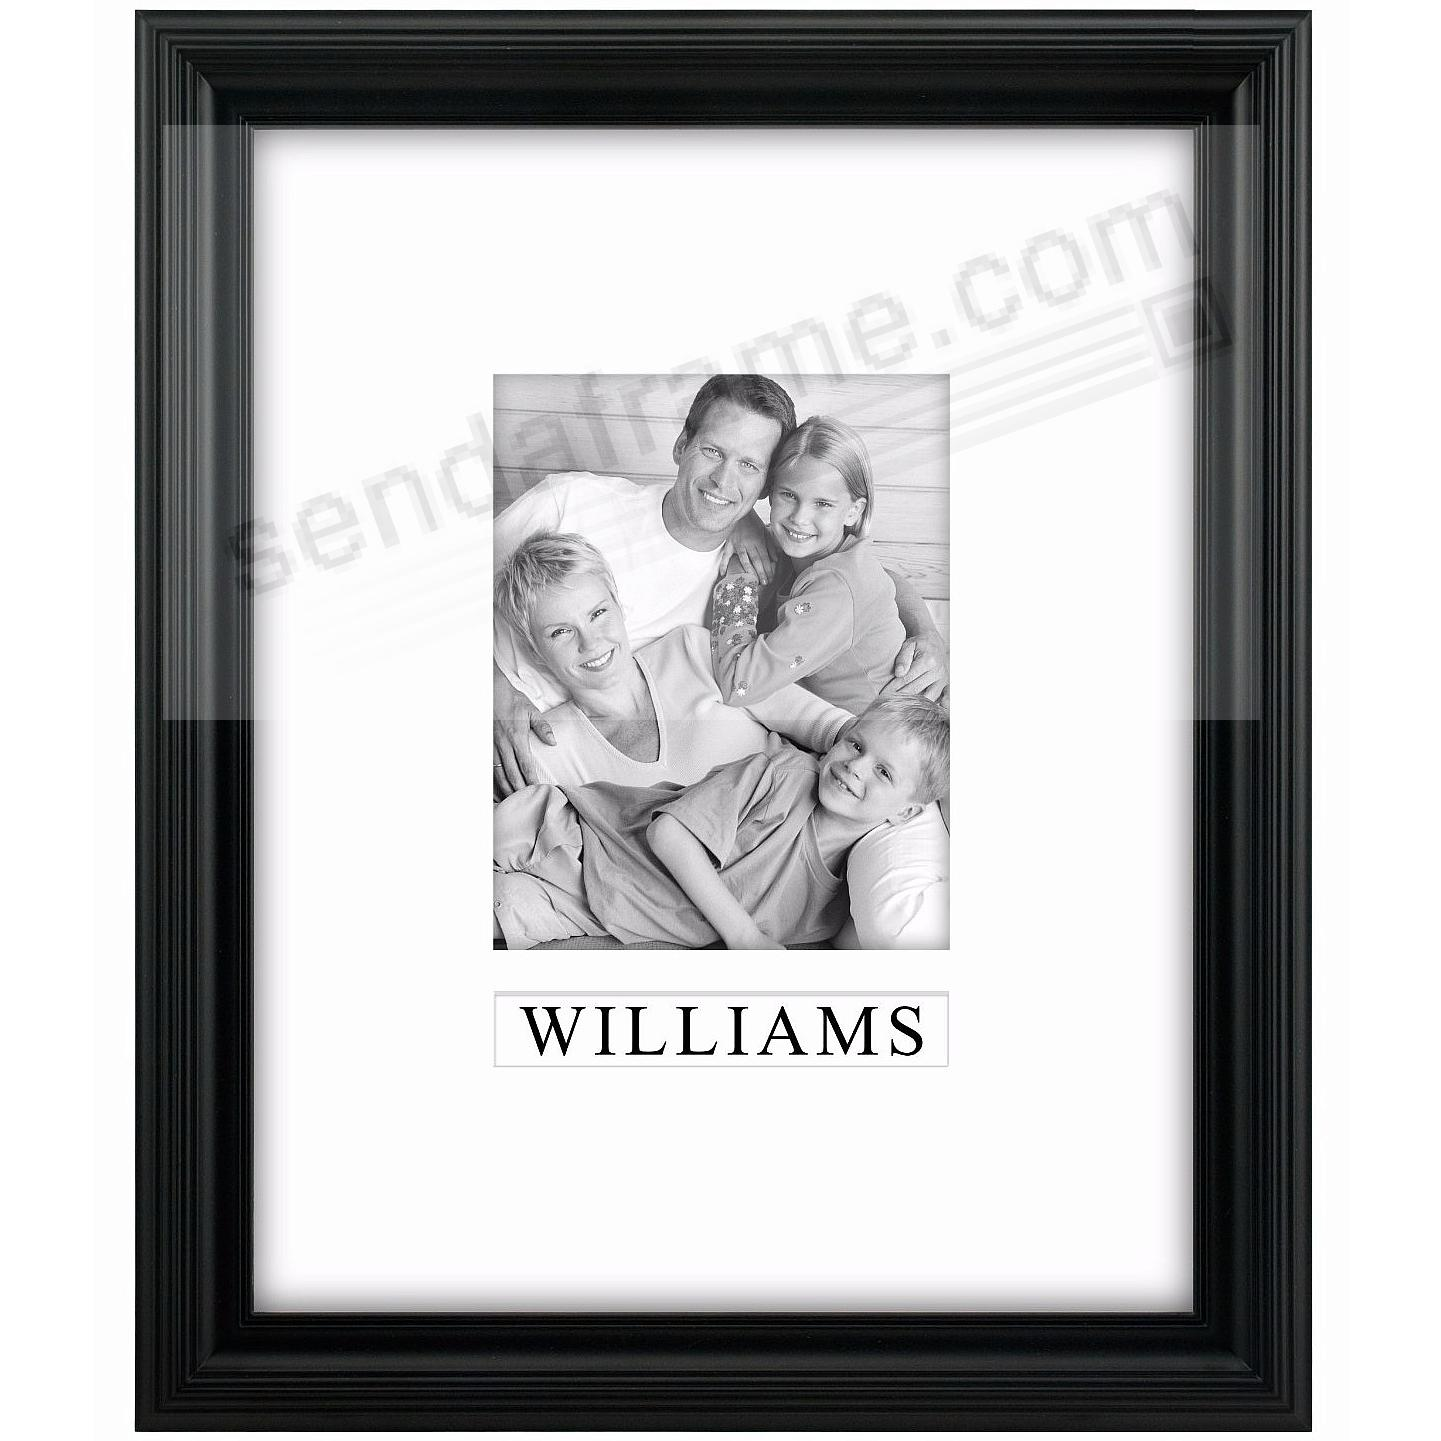 black portrait personalized matted 11x148x10 stepped frame by malden design